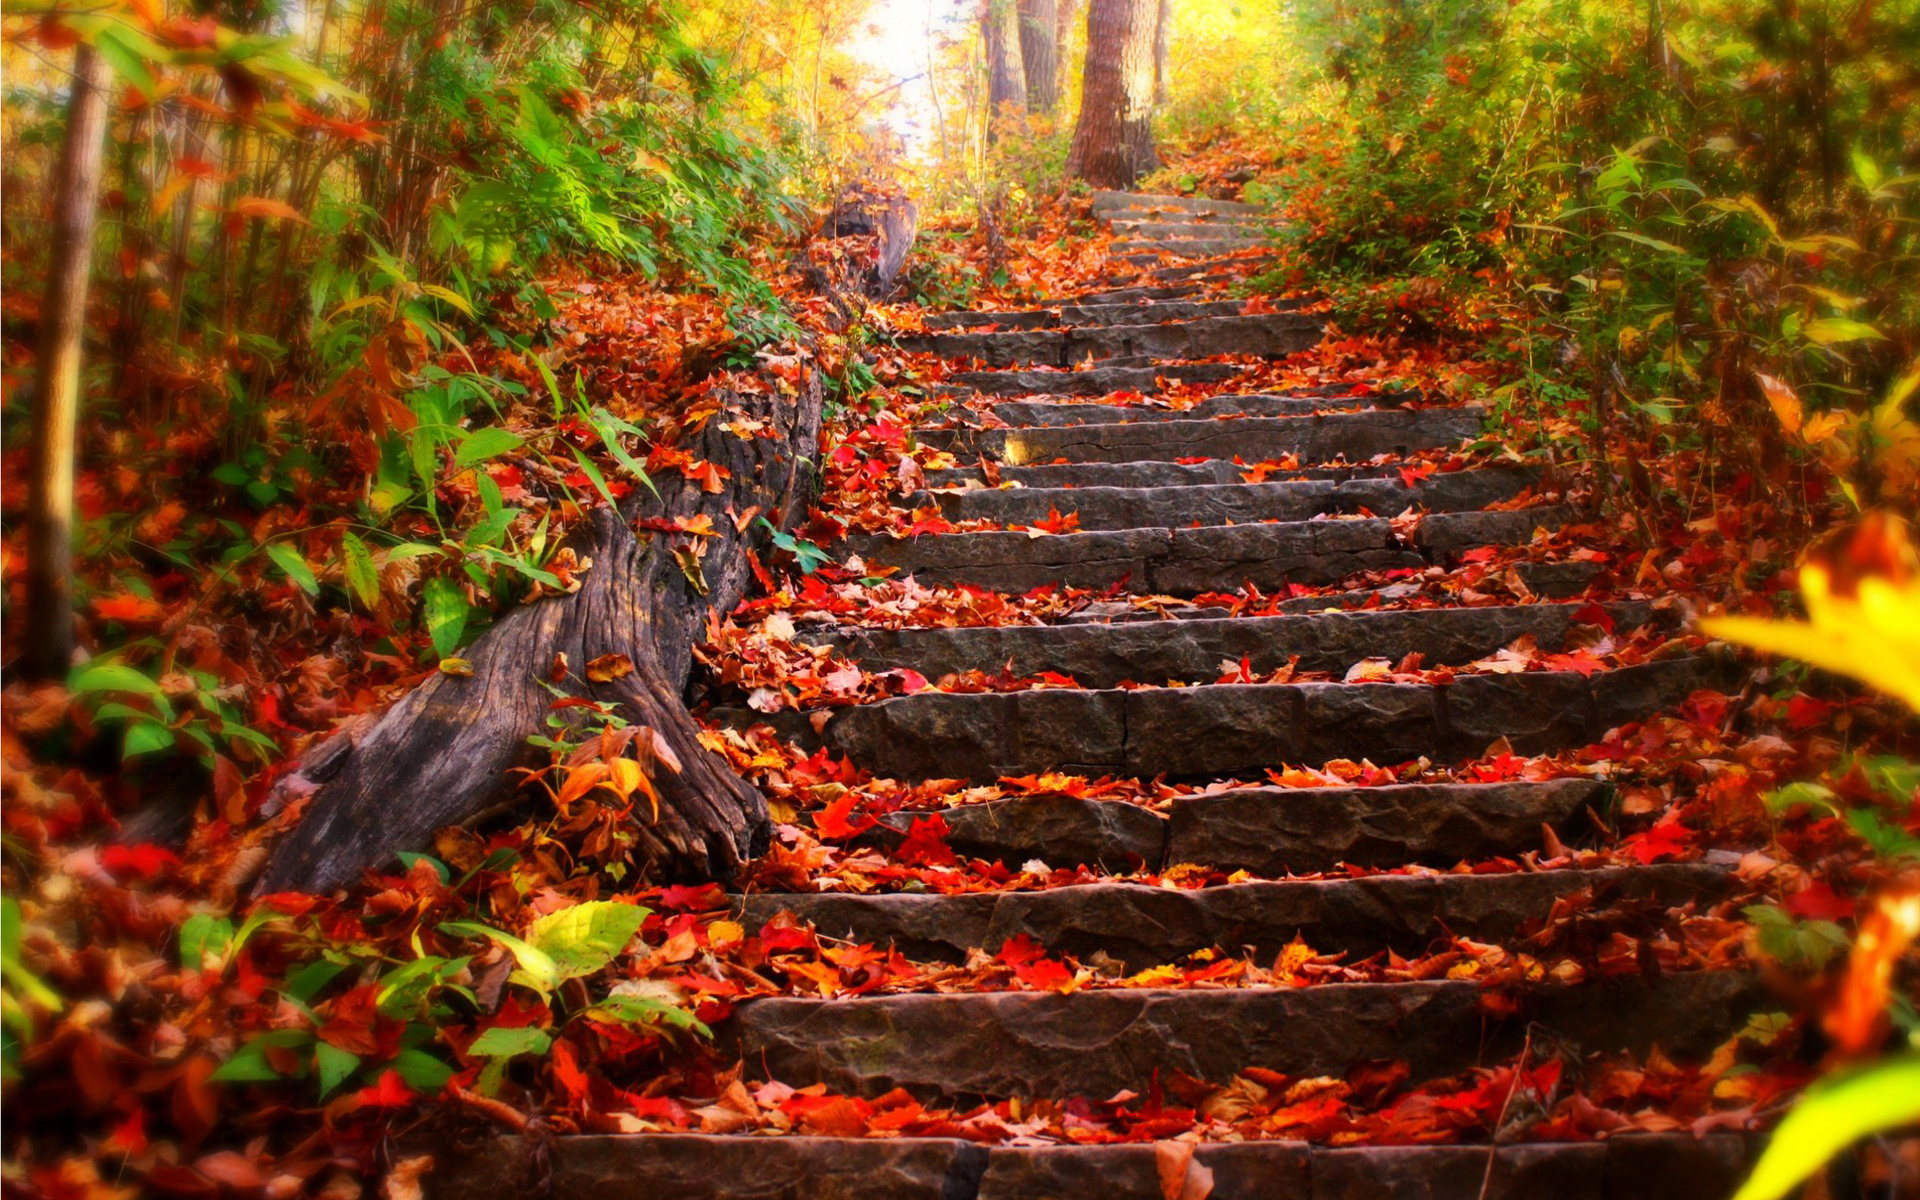 Autumn Leaves at Stone Stairs 415.97 Kb